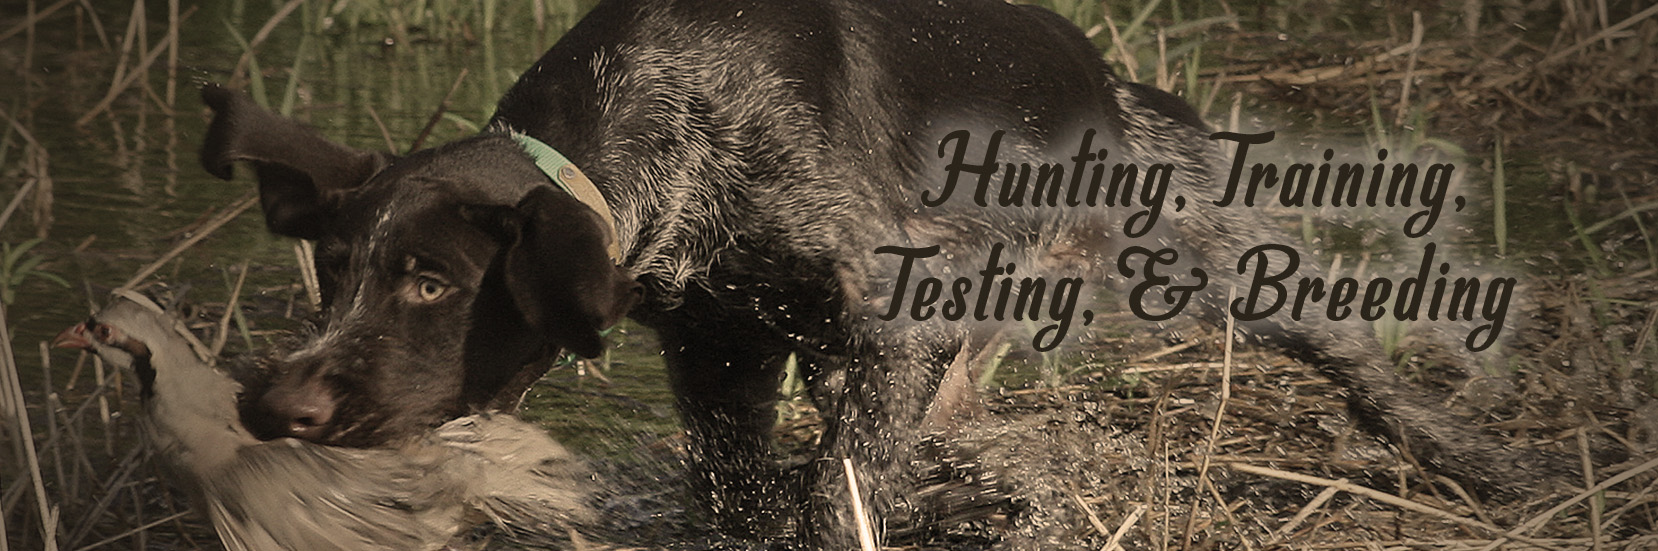 Hunting, Training, Testing, Breeding